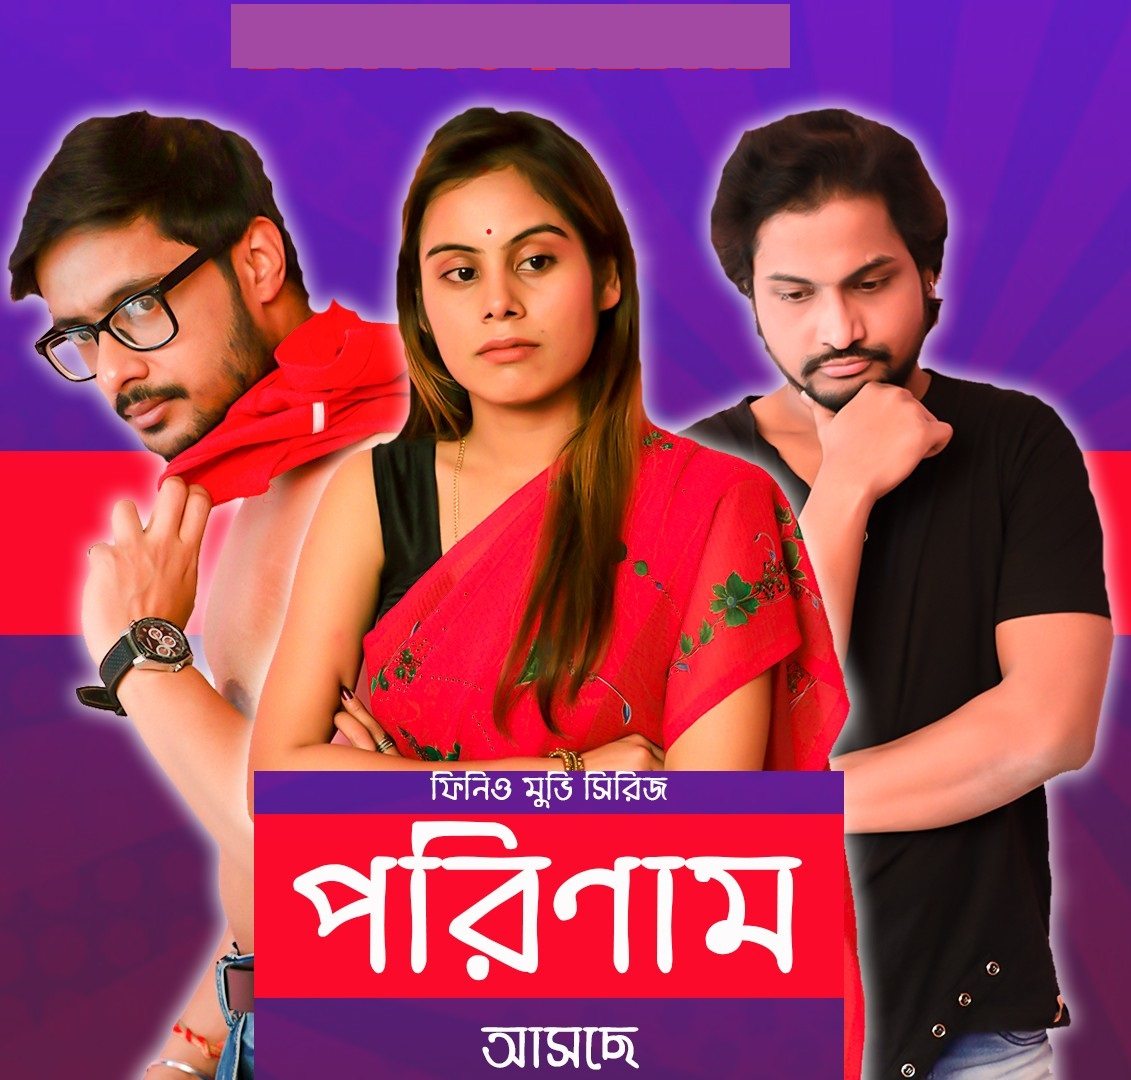 Porinam (2020) Feneo Bengali S01E01 720p UNRATED